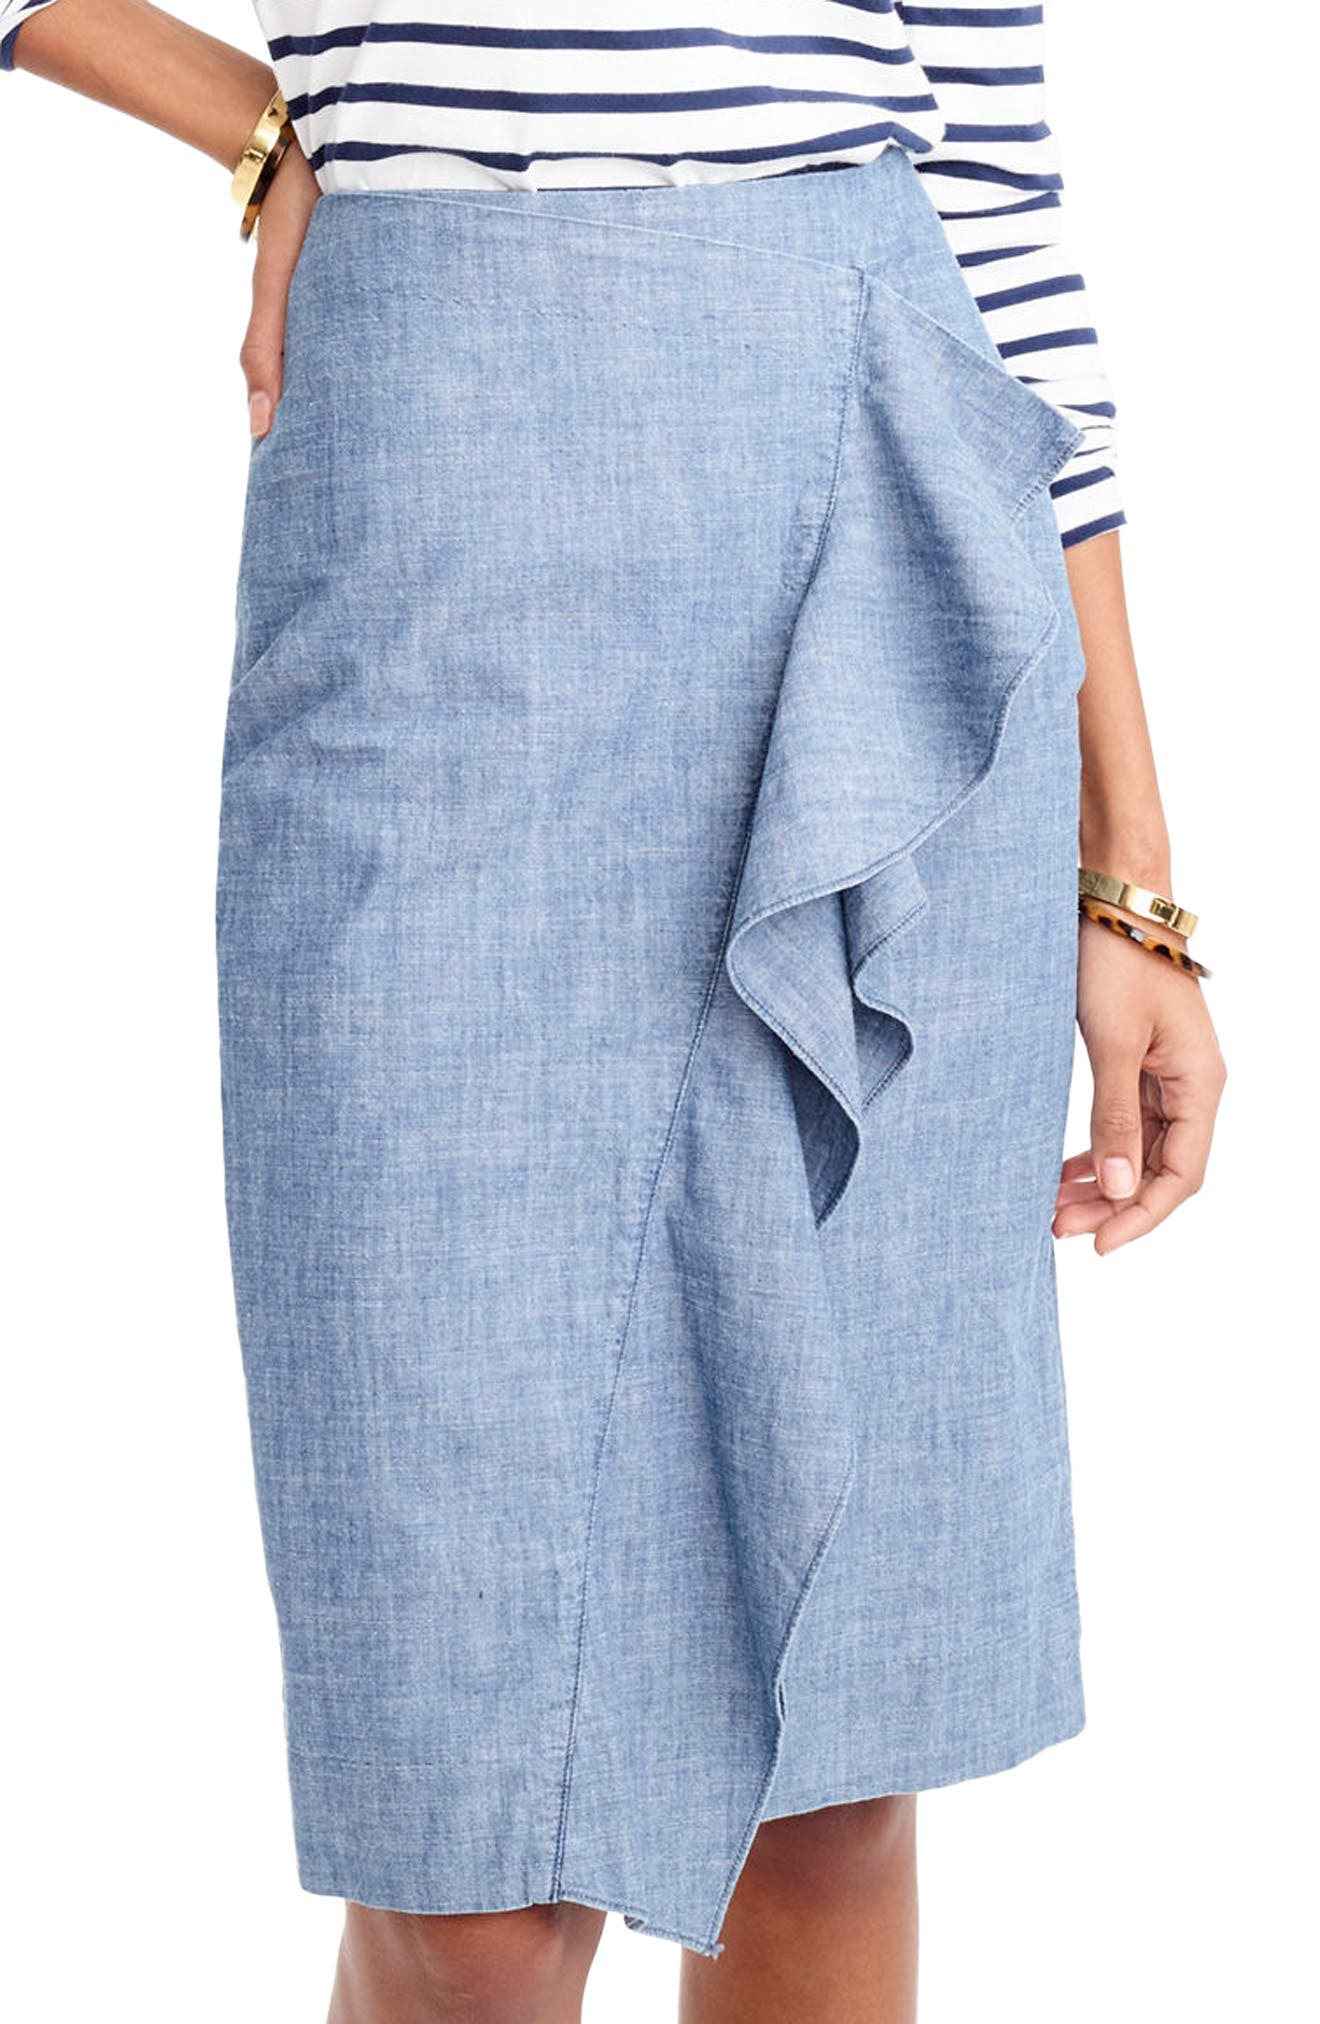 Alternate Image 1 Selected - J.Crew Chambray Ruffle Skirt